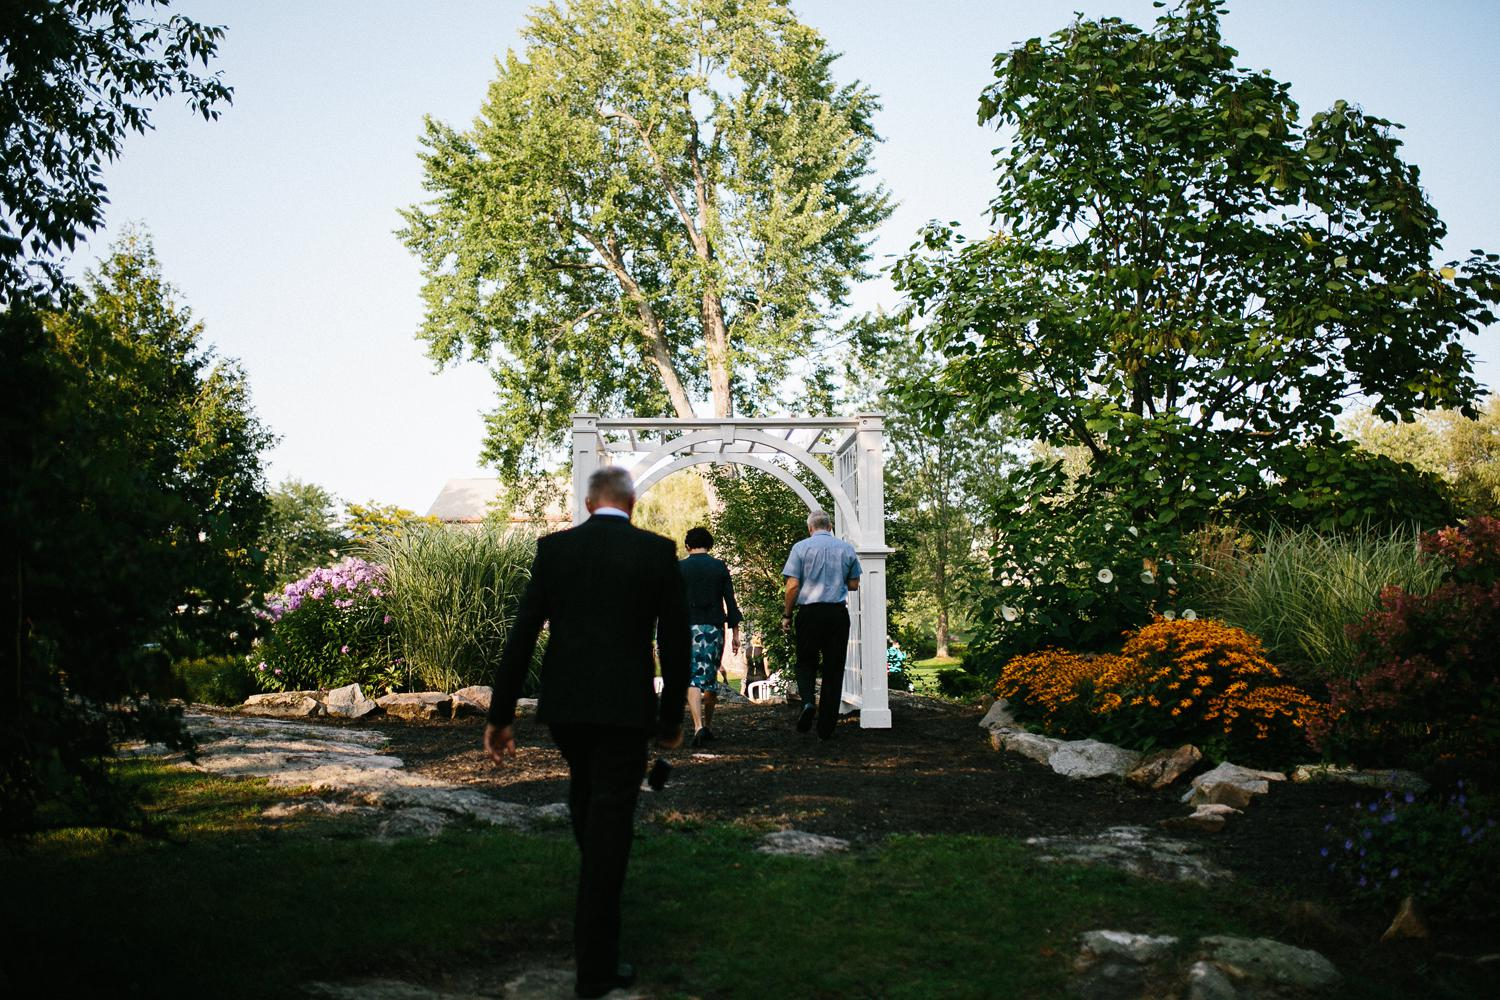 stewart park wedding ceremony-029.jpg